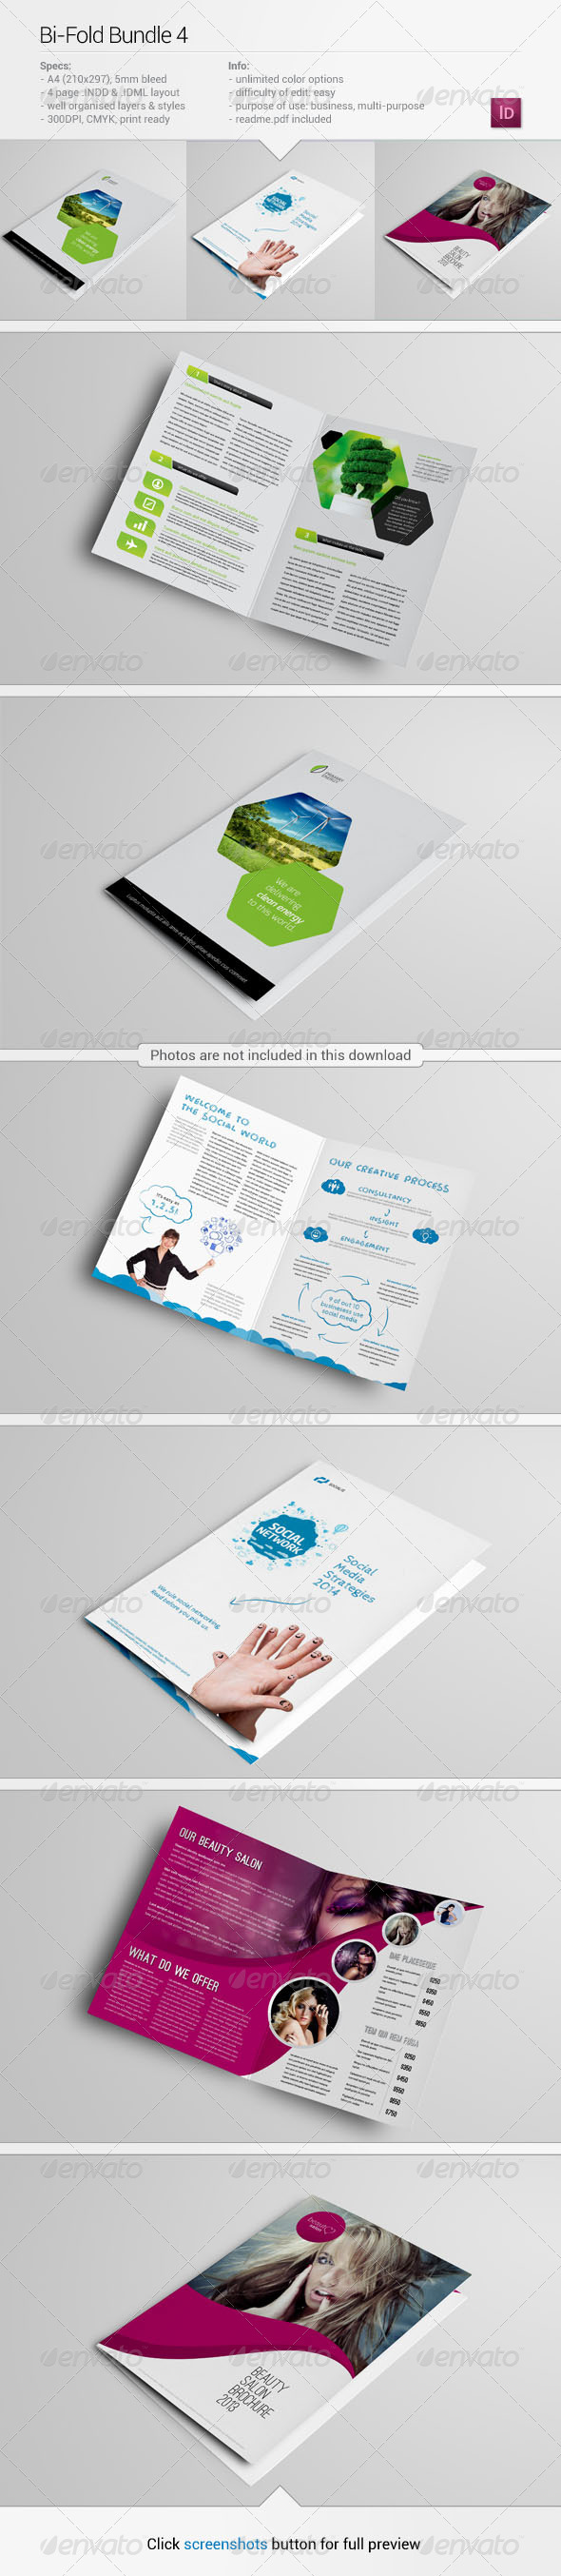 GraphicRiver Bi-Fold Bundle 4 5833073